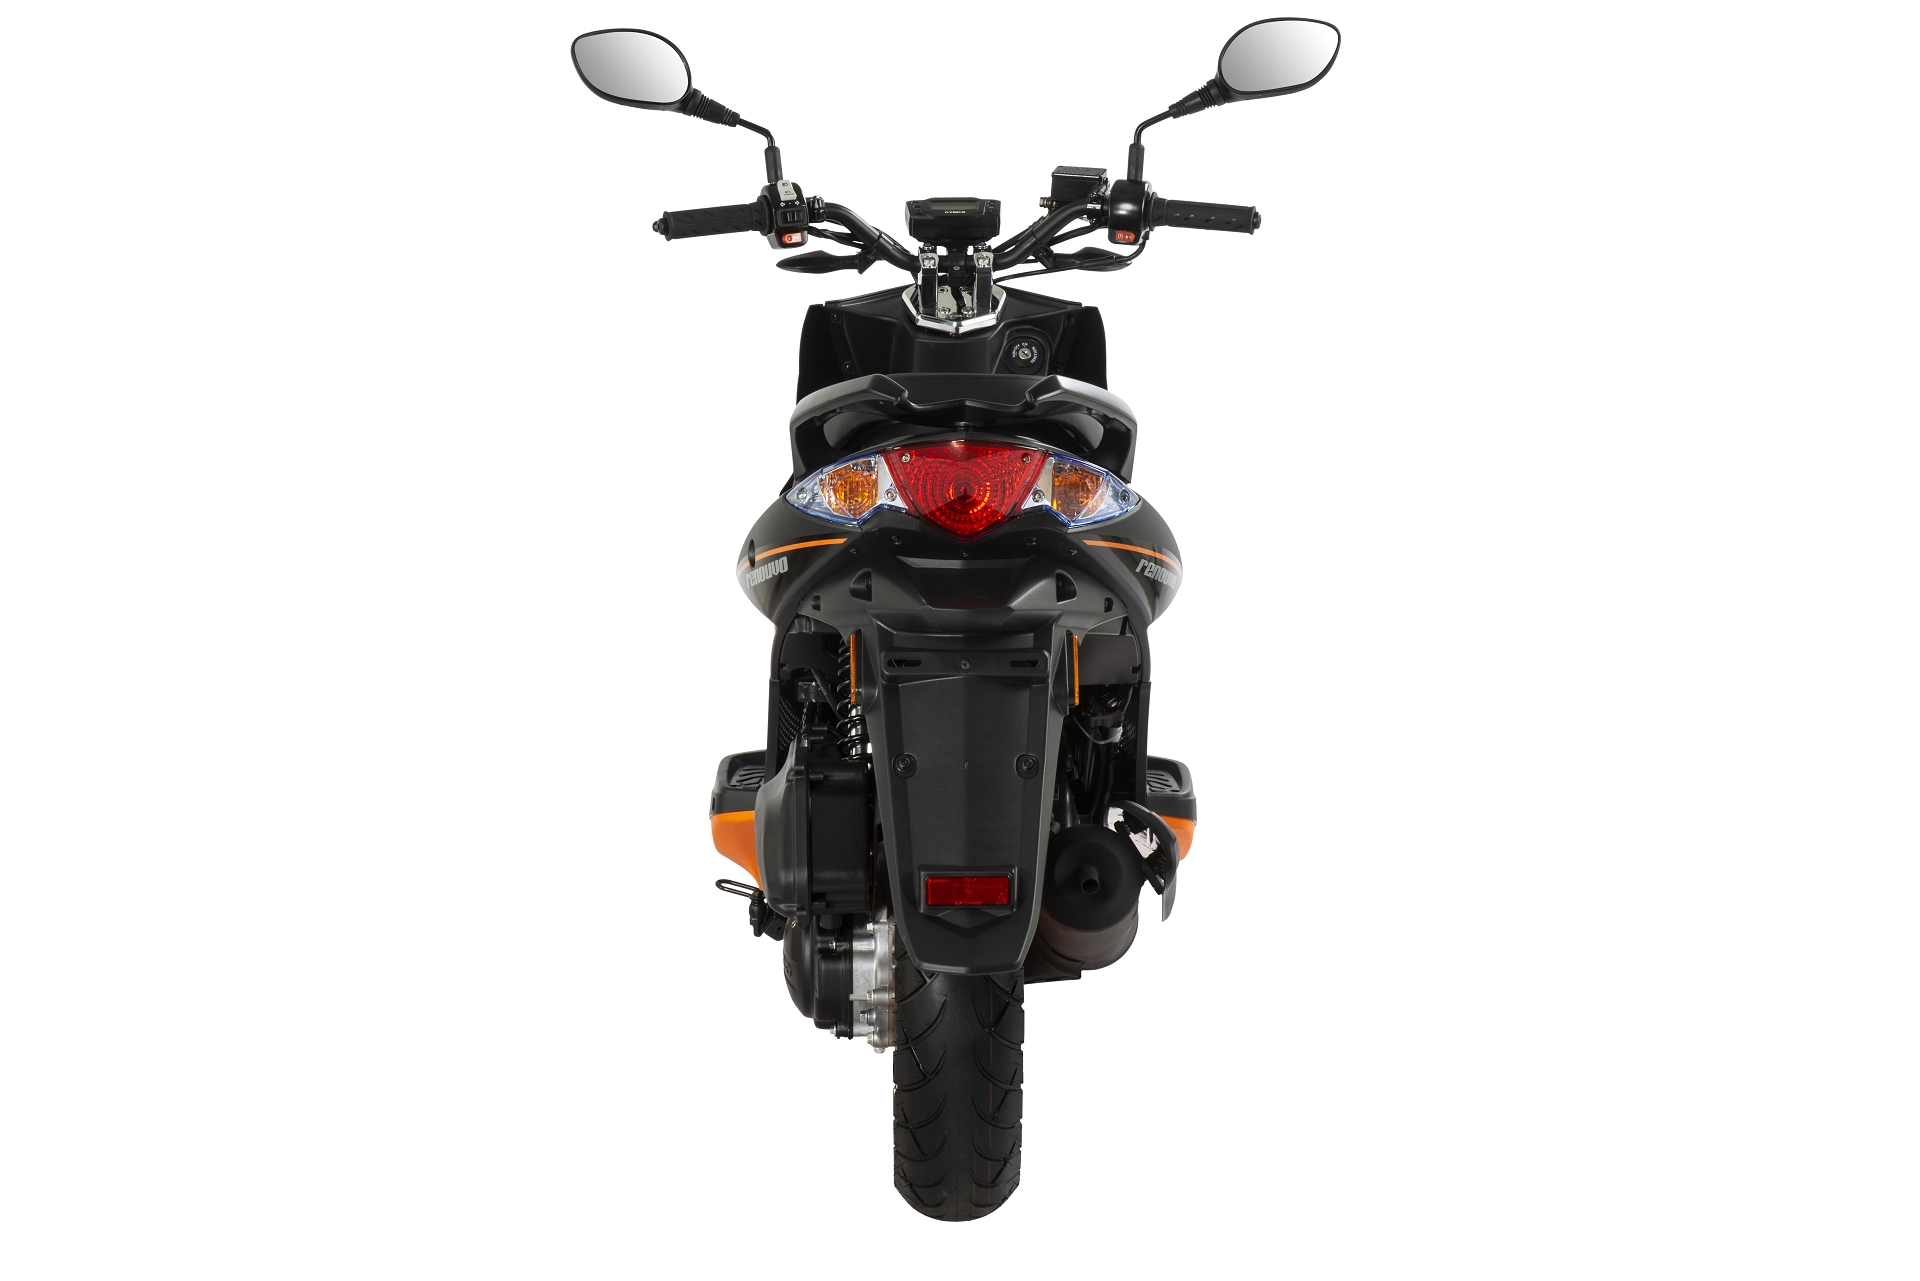 AGILITY RS NAKED 50 - Motorradhaus Stahl